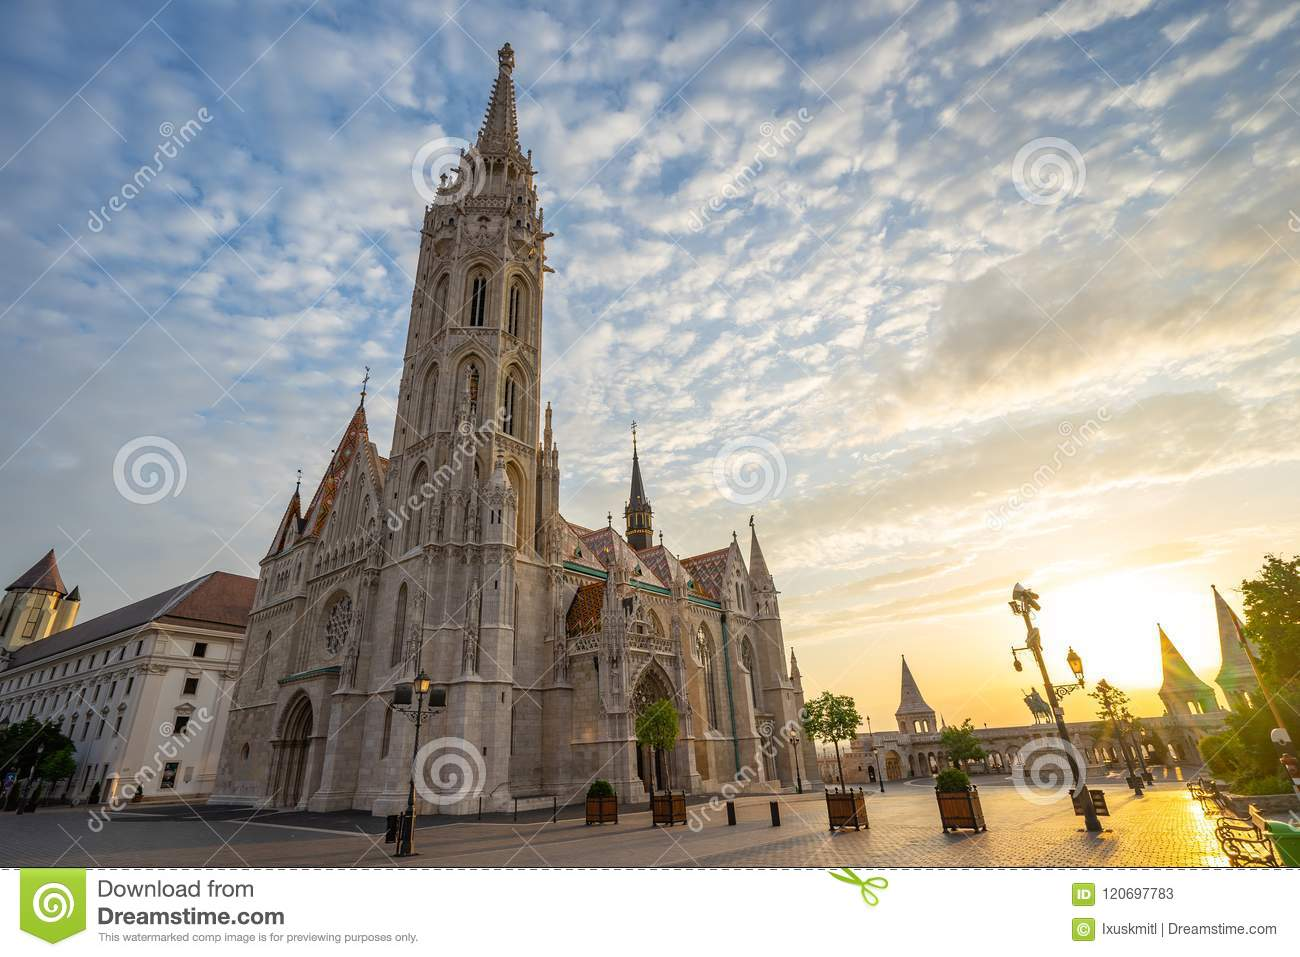 Matthias Church on the Buda bank of the Danube in Budapest city, Hungary